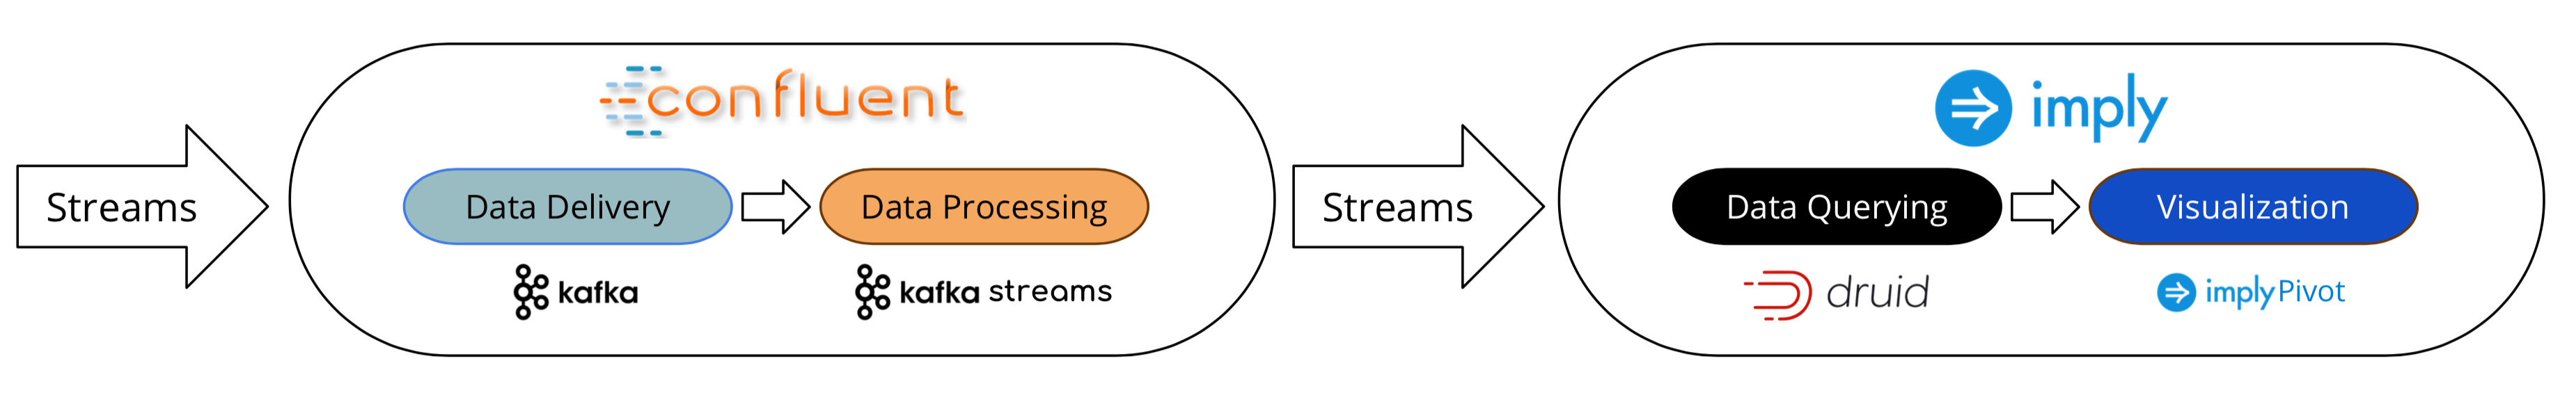 An End-to-End Architecture for Streaming Analytics